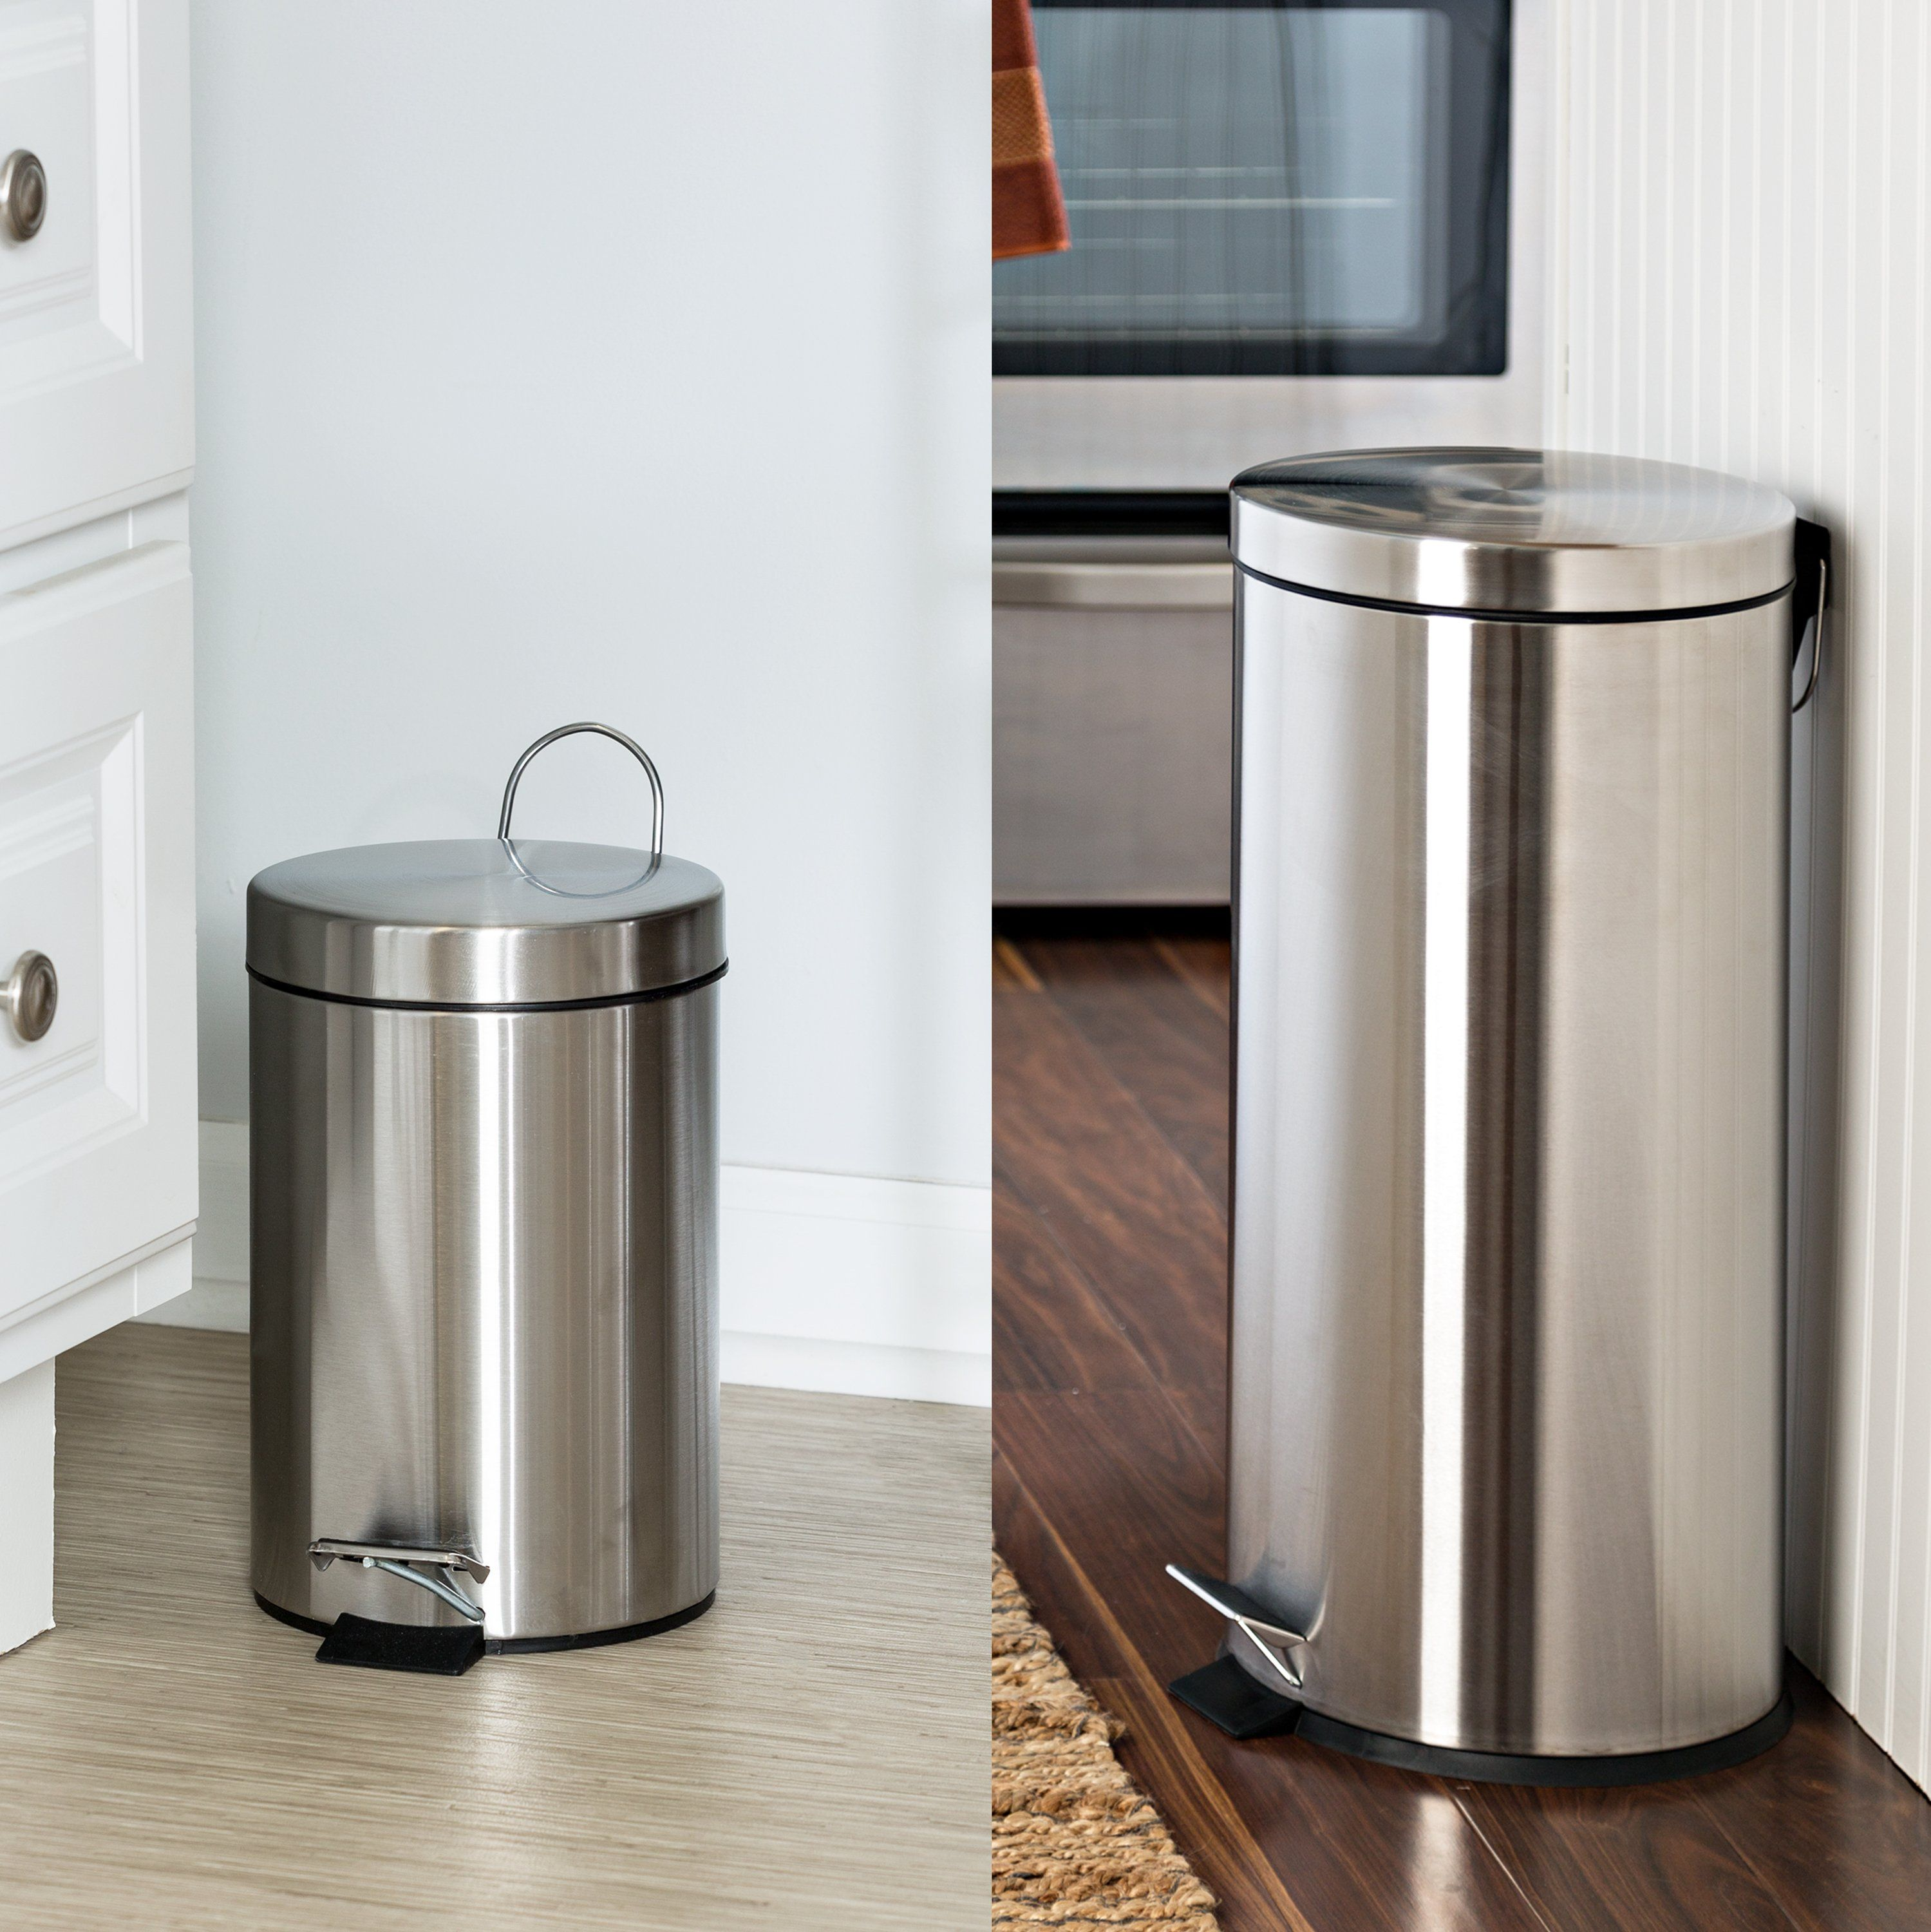 Stainless Steel Step Trash Can With Lid Set Of 30l And 3l Trash Can Kitchen Trash Cans Stainless Kitchen Stainless steel kitchen trash can